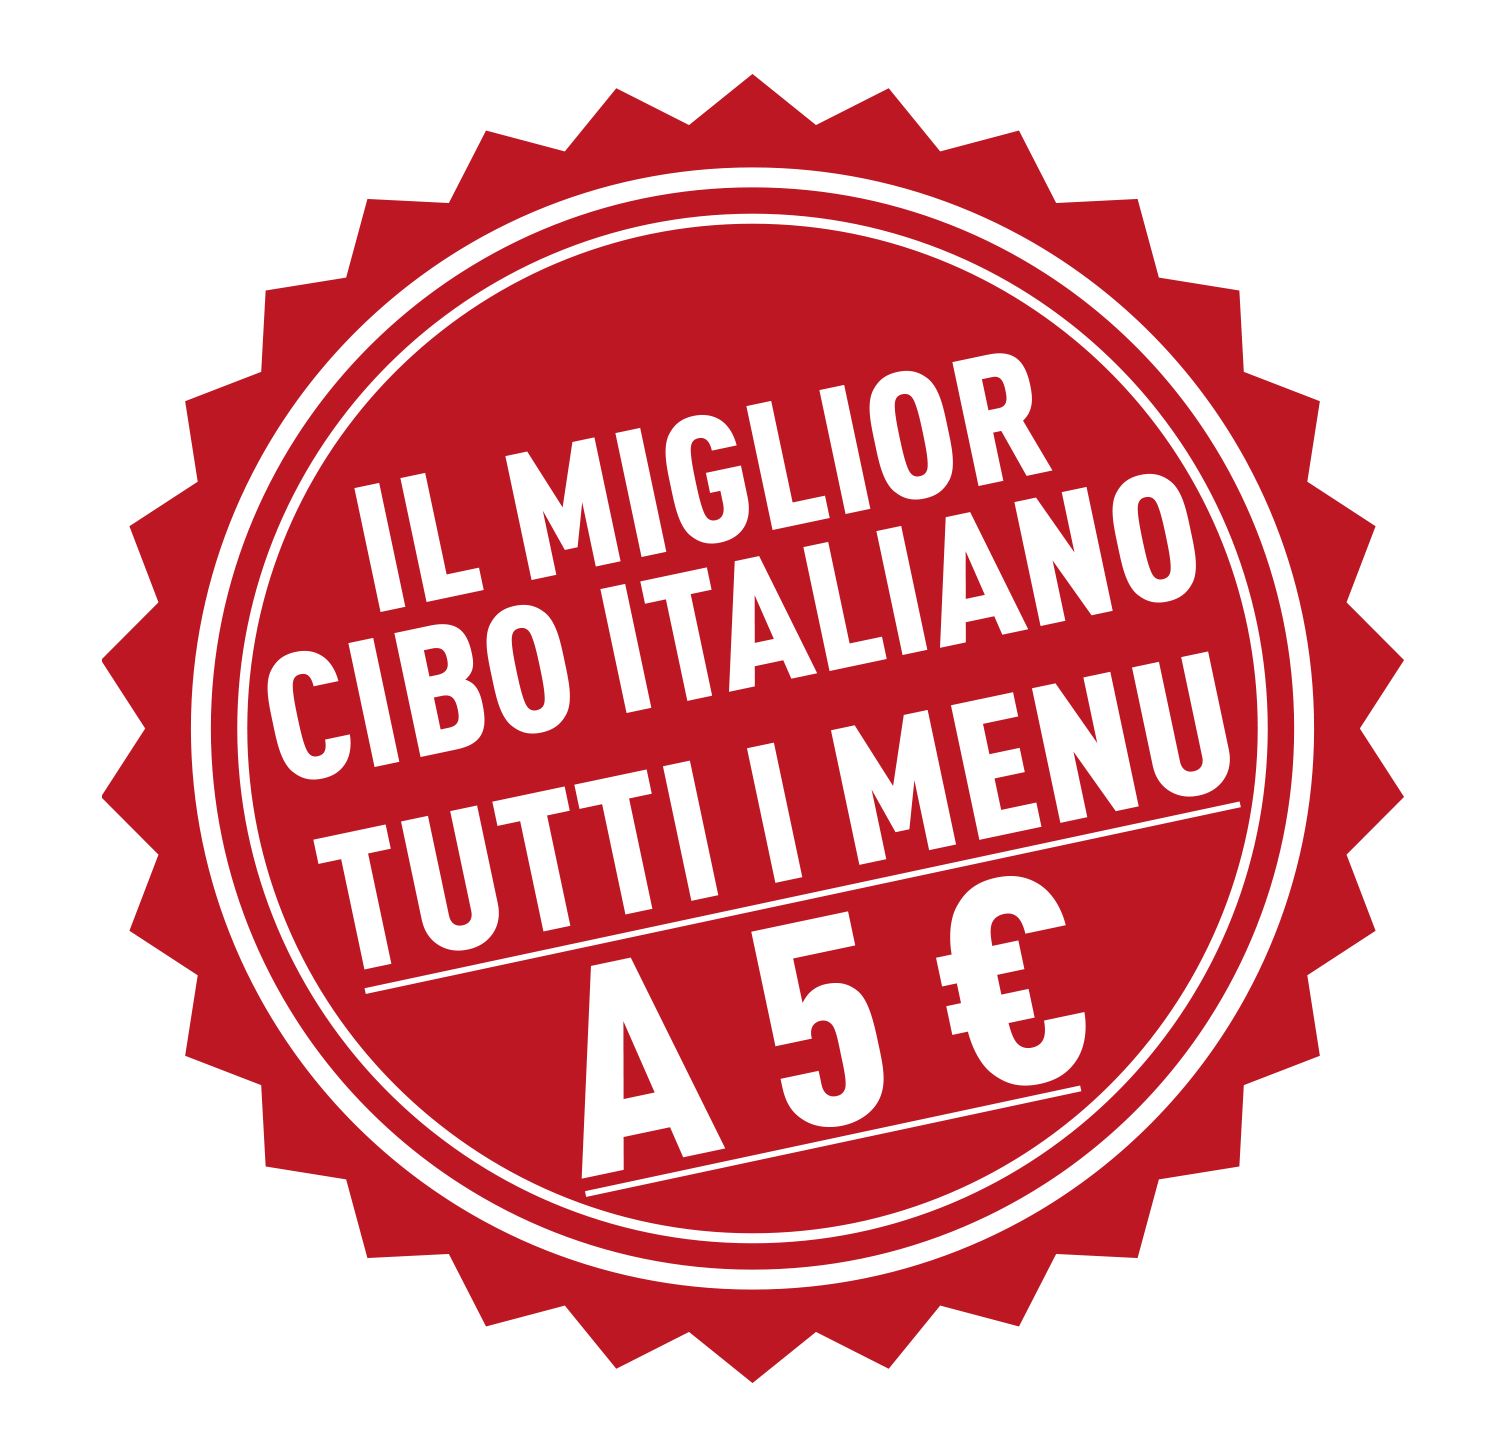 Tutti i menù in offerta